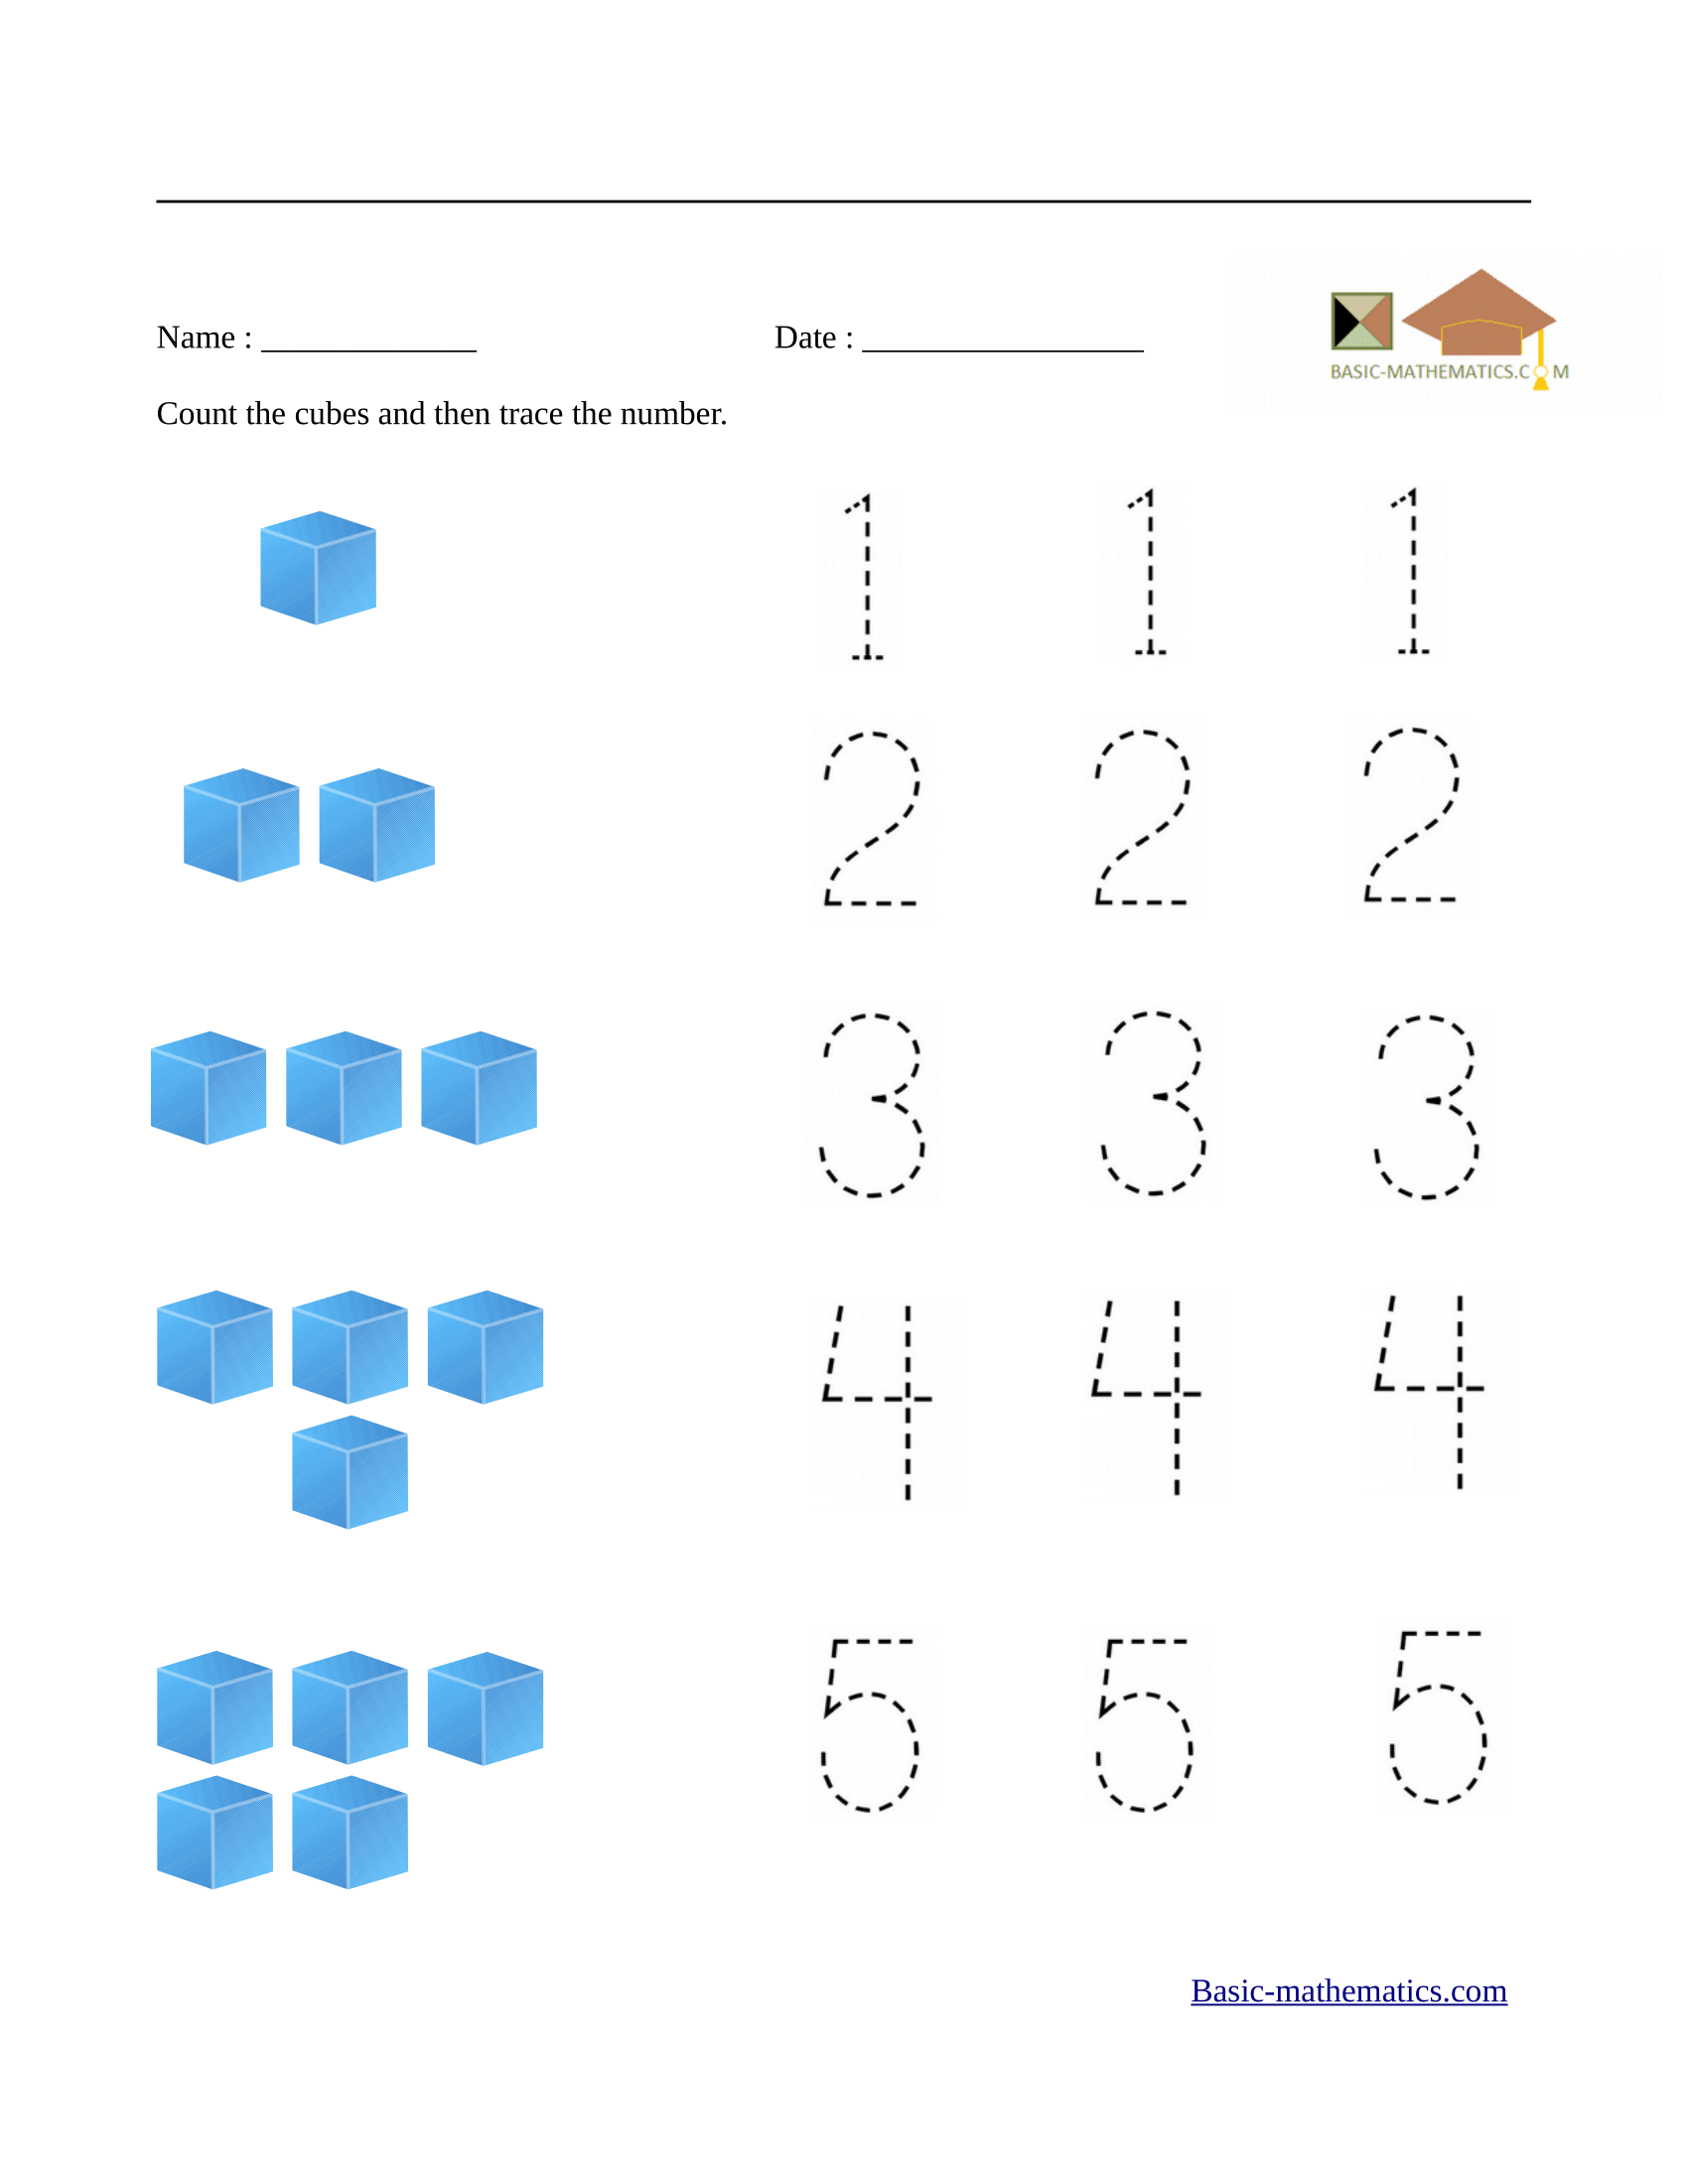 Math Worksheets For Preschool: preschool math worksheets,